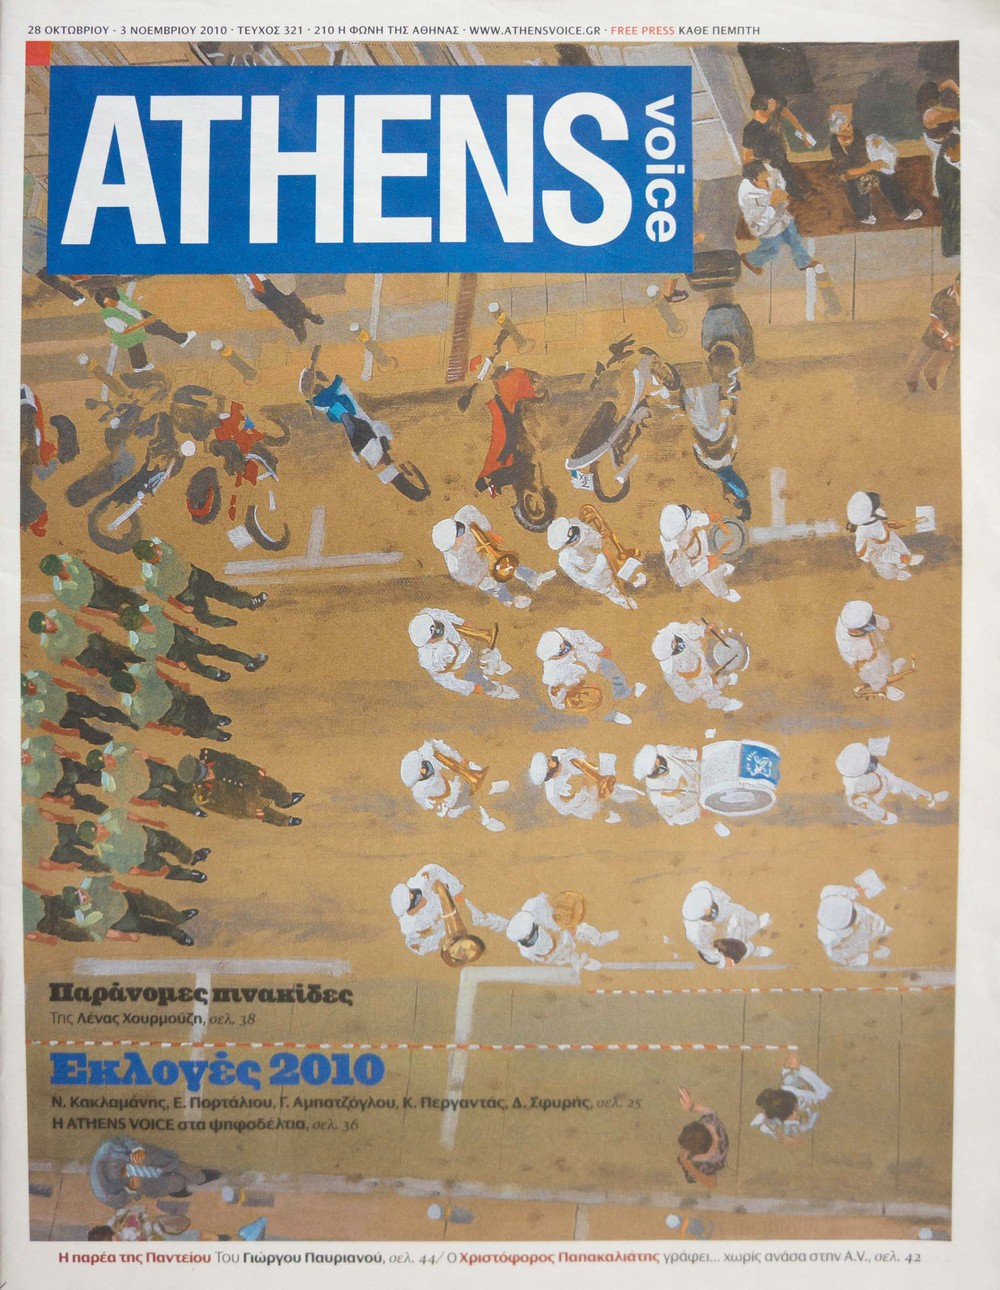 site-7-17-14 athens voice cover 3-11-10.jpg